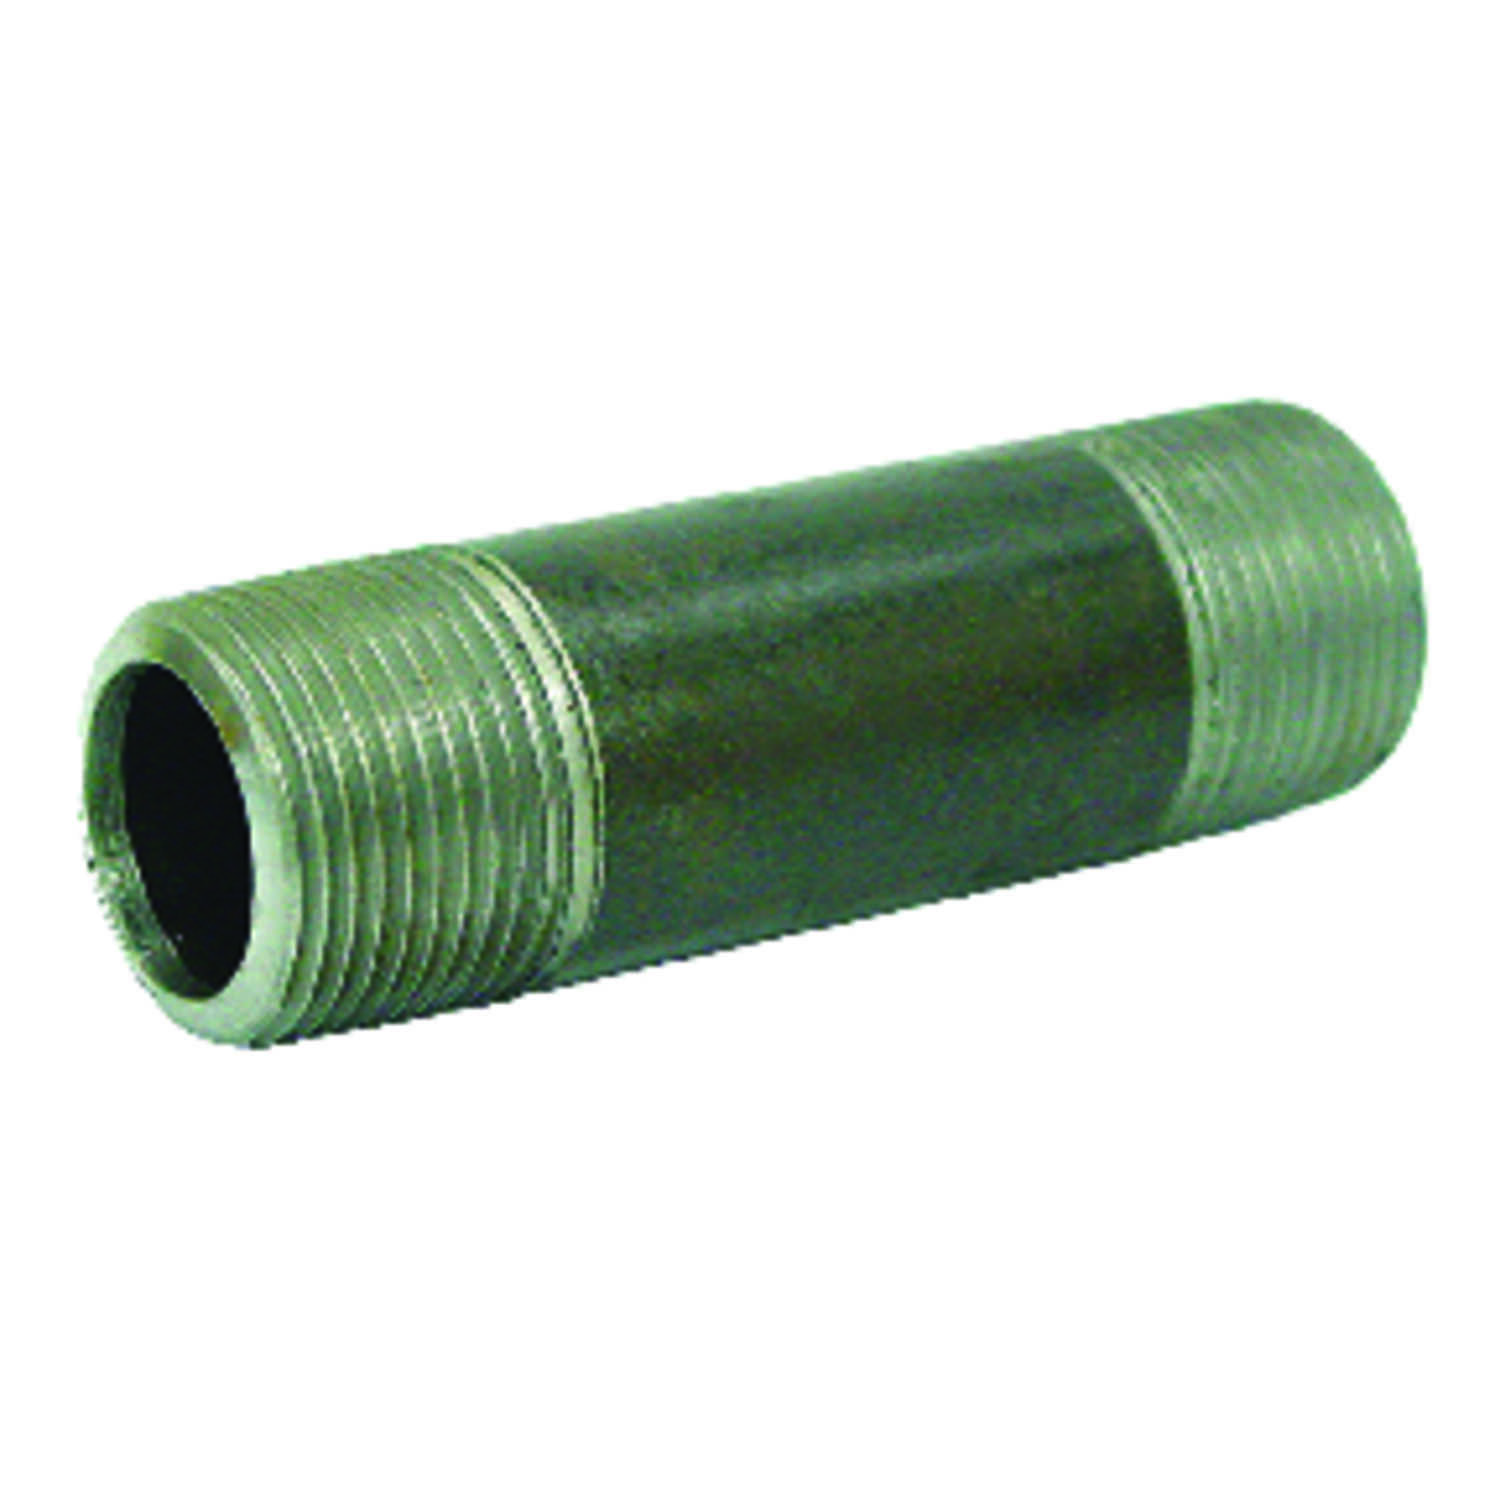 Anvil  Beck  1-1/2 in. MPT   x 1-1/2 in. Dia. x 3-1/2 in. L MPT  Galvanized  Steel  Pipe Nipple